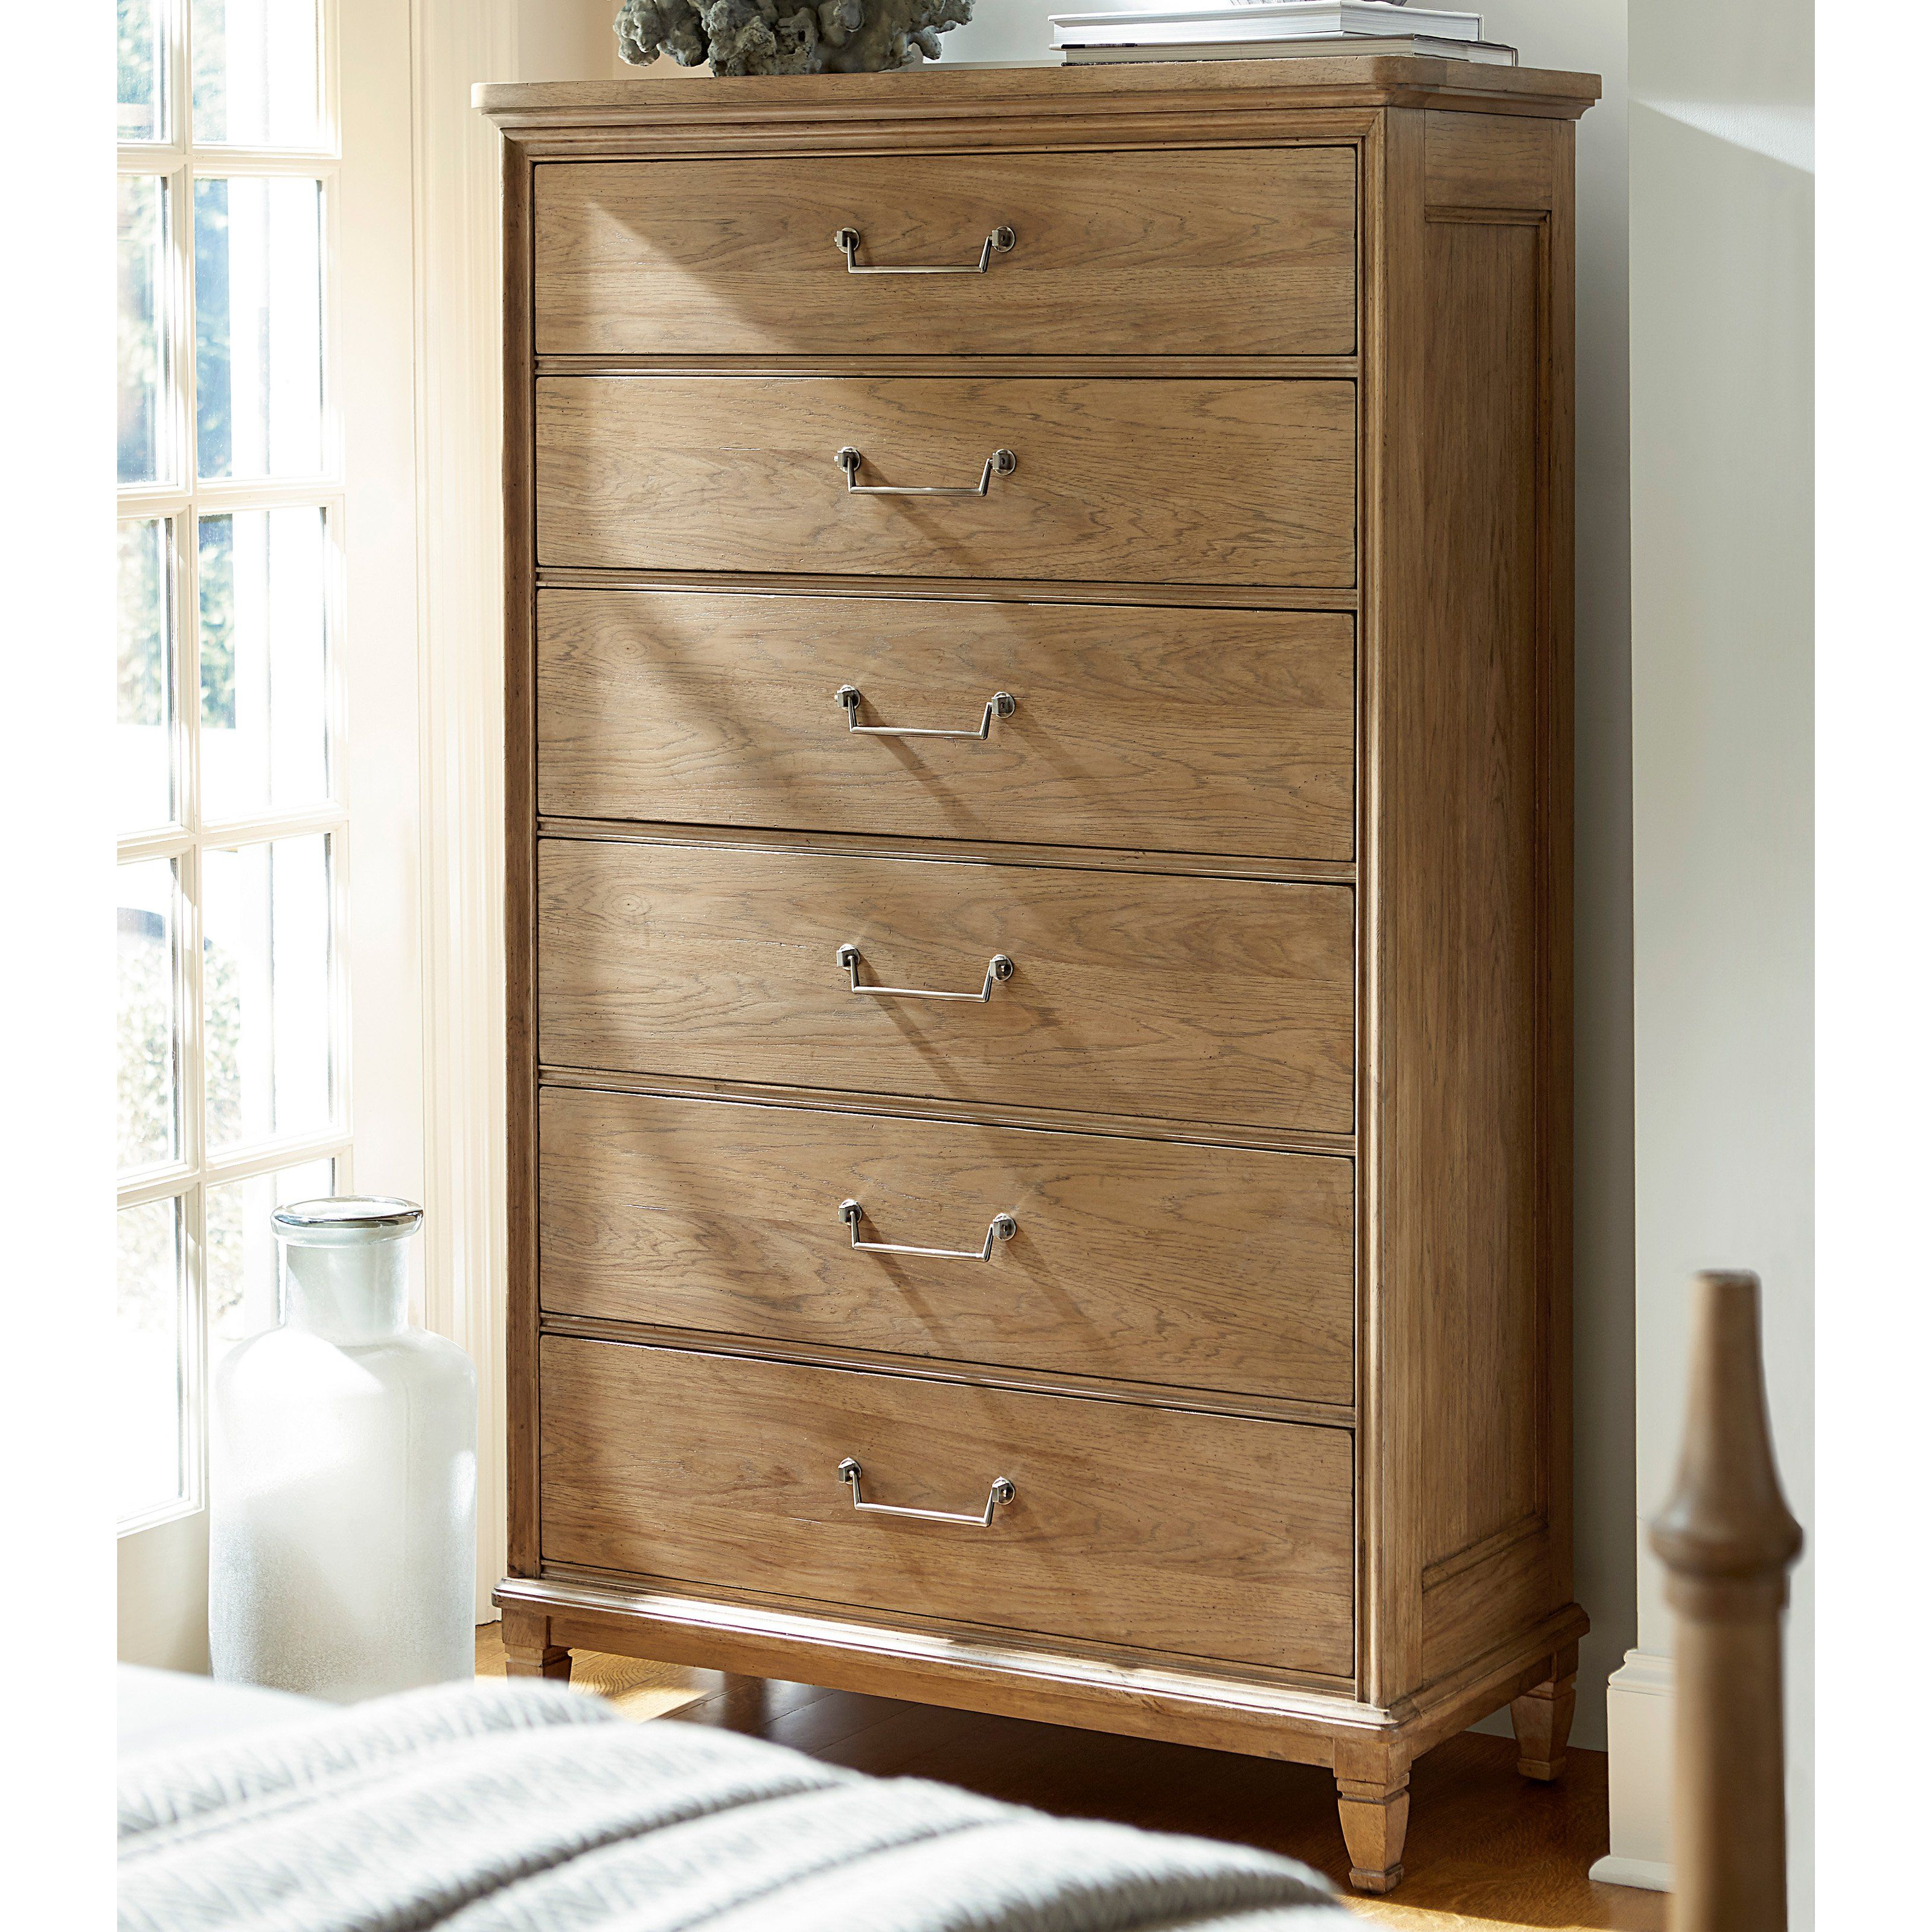 Universal Furniture Moderne Muse 6 Drawer Chest | from hayneedle.com